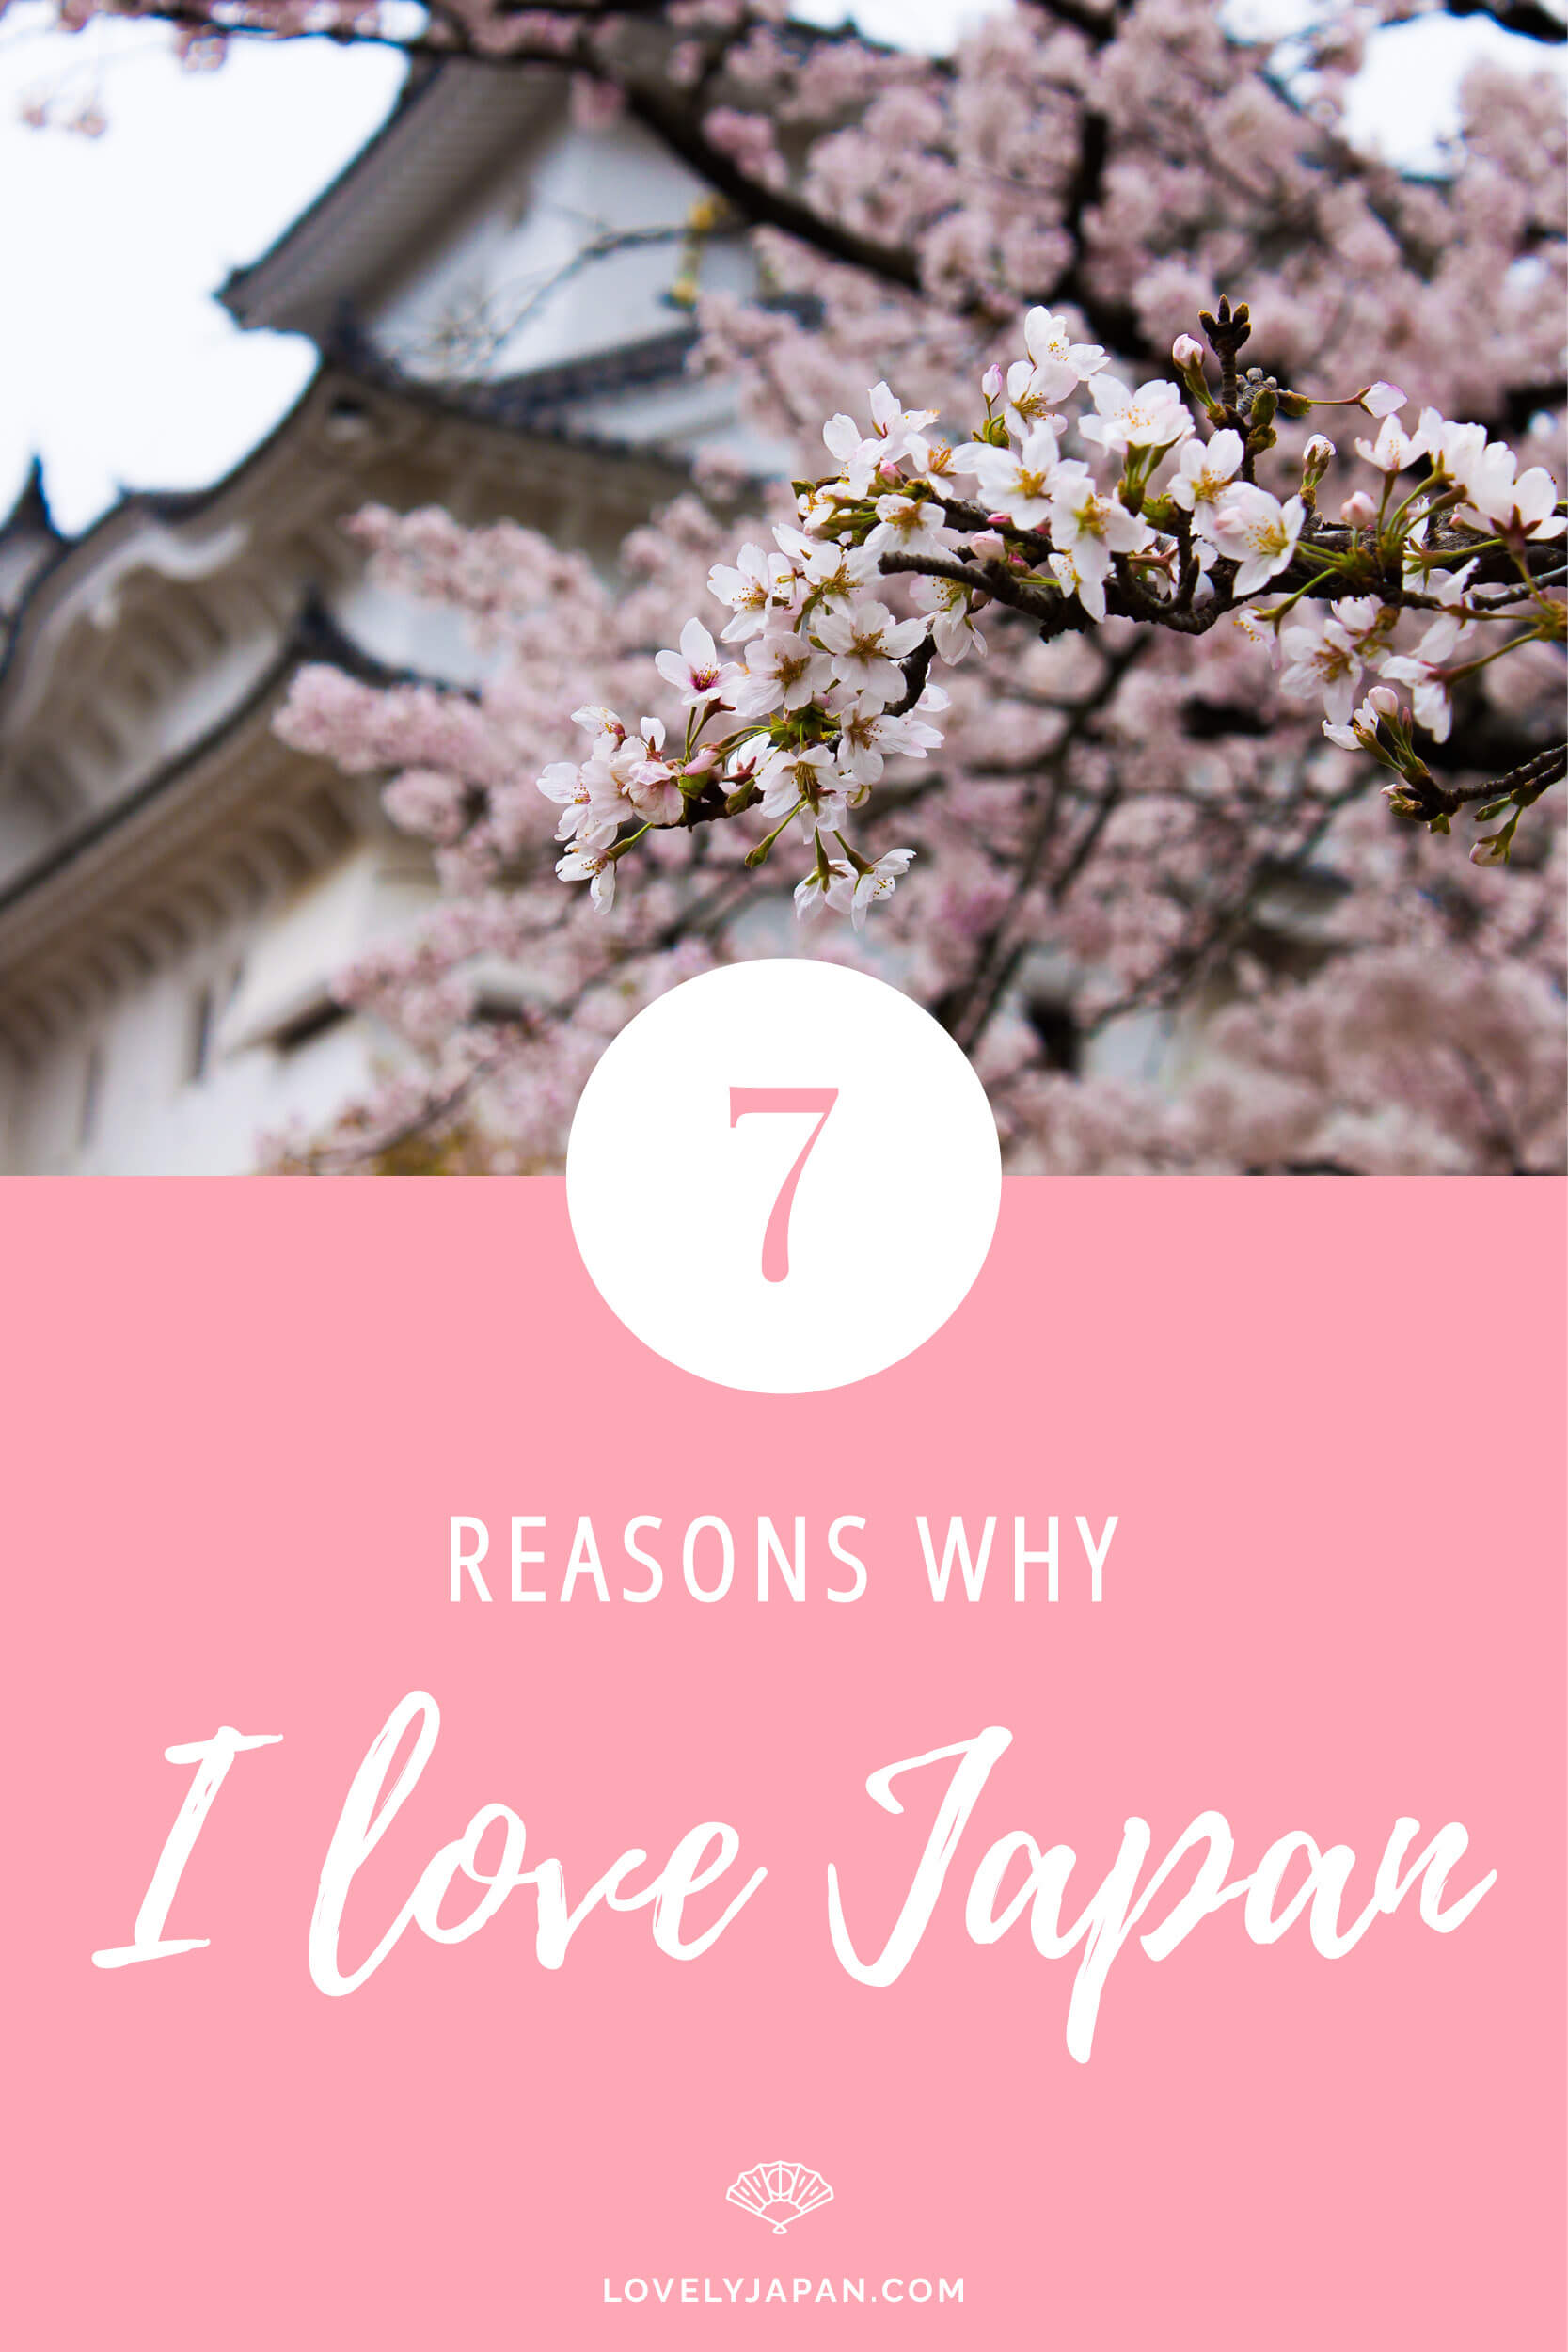 7 Reasons Why I Love Japan